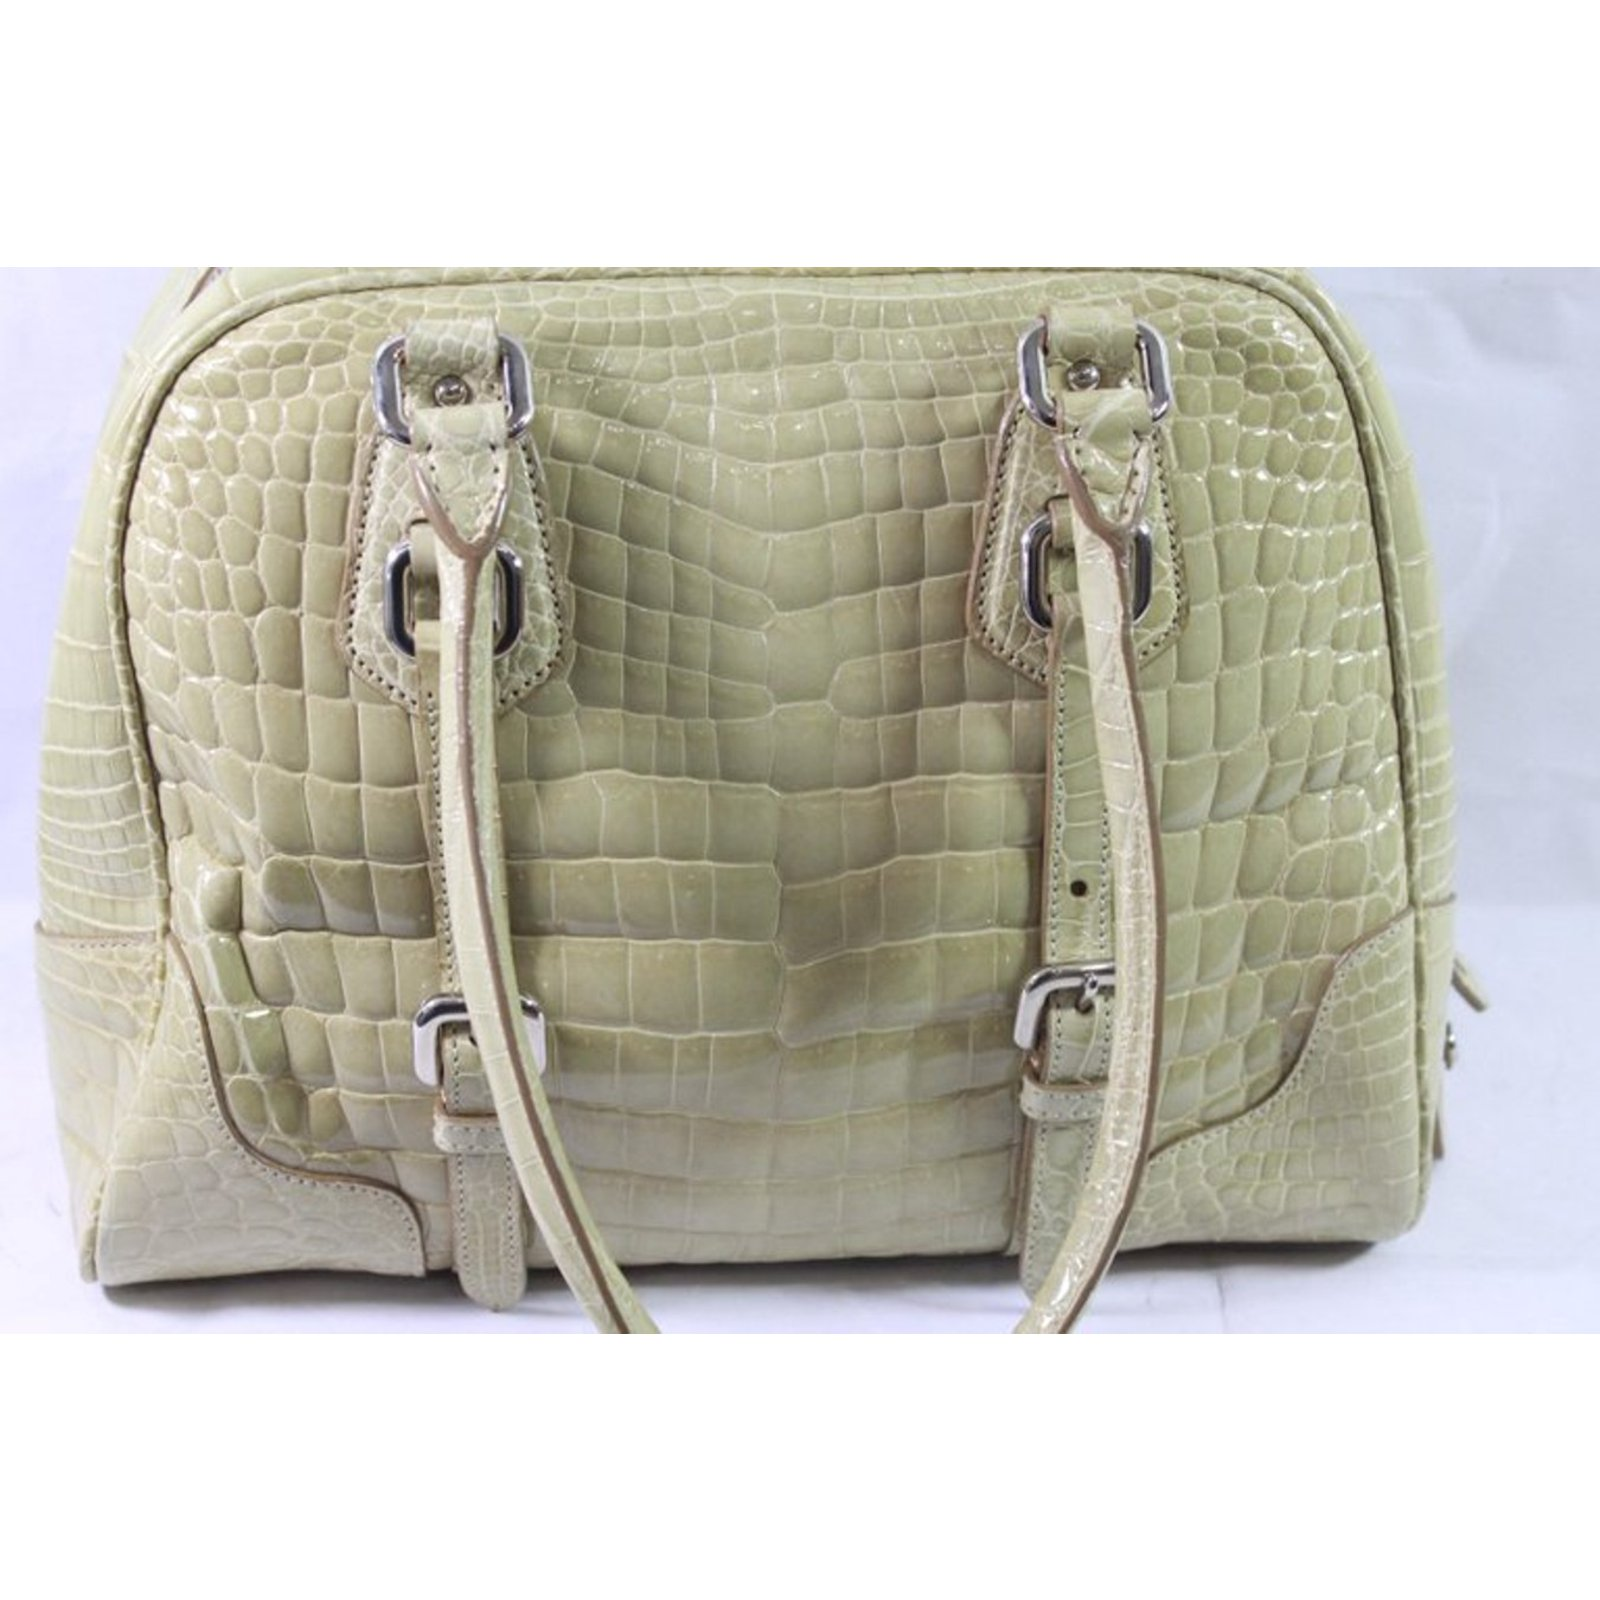 6b46da1f06f0 Prada Crocodile Bag Handbags Exotic leather Beige ref.92113 - Joli Closet